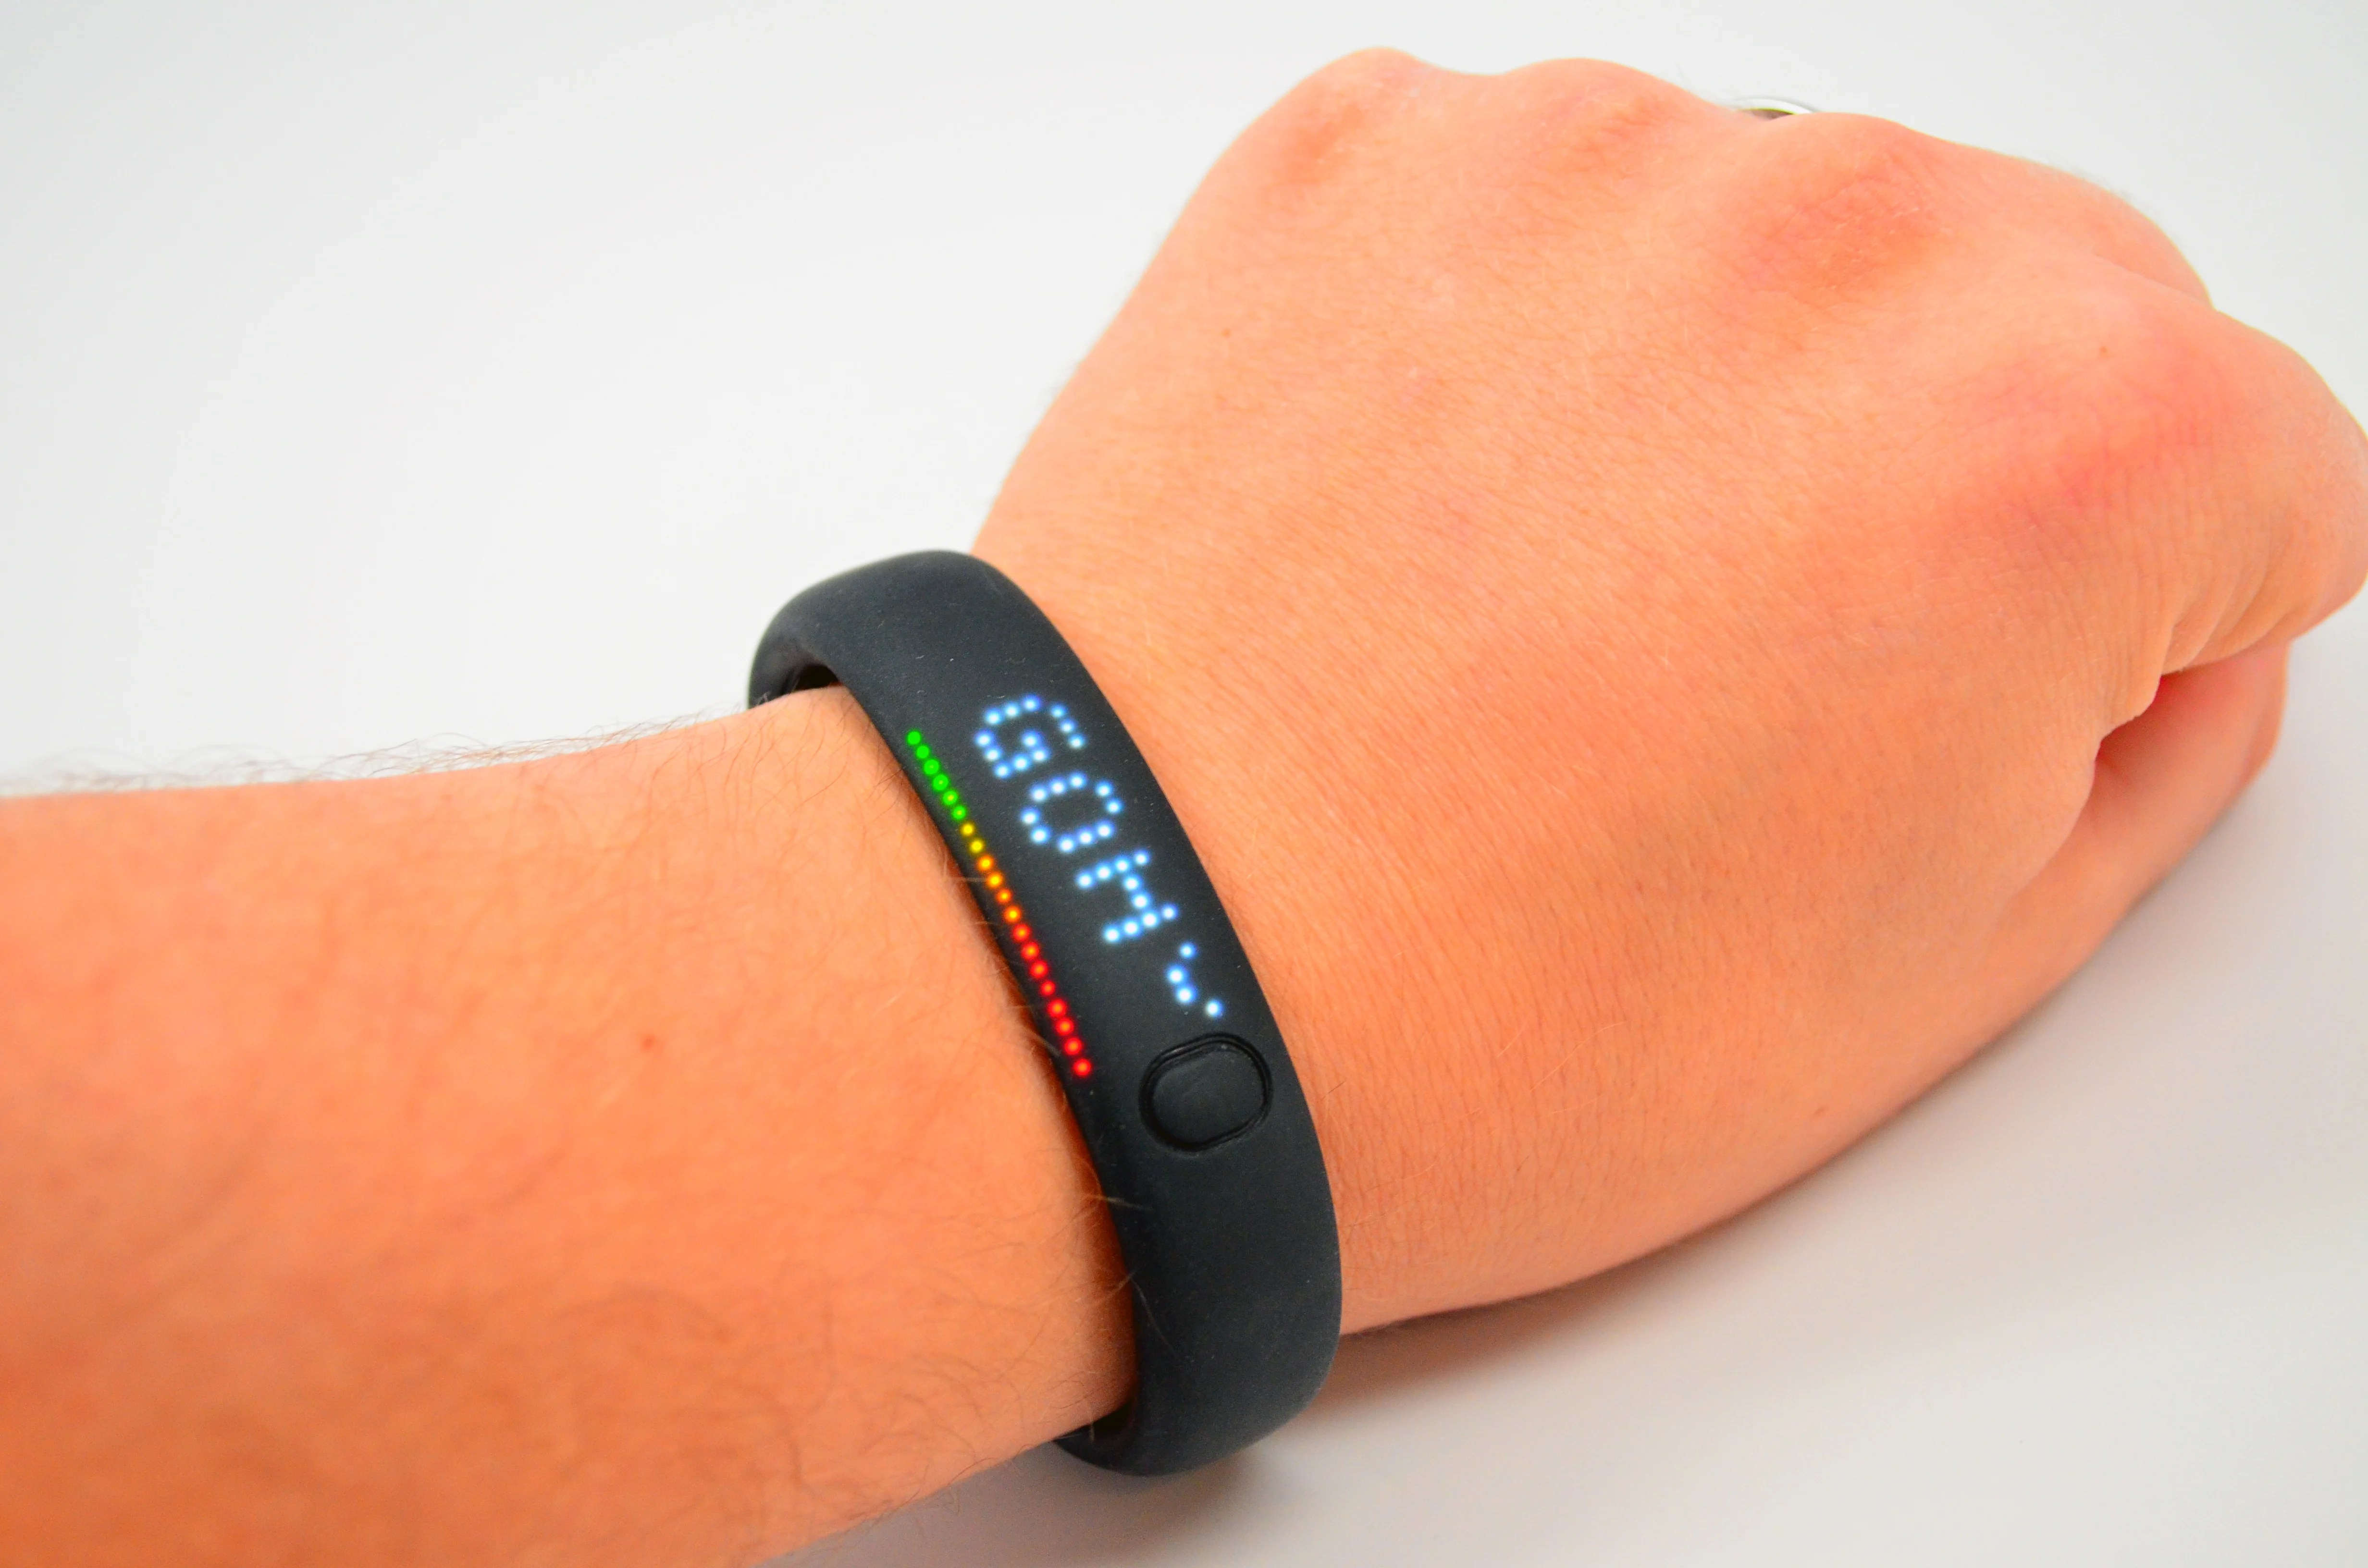 Nike FuelBand 2: Heart Rate Monitor & Android Support Rumored